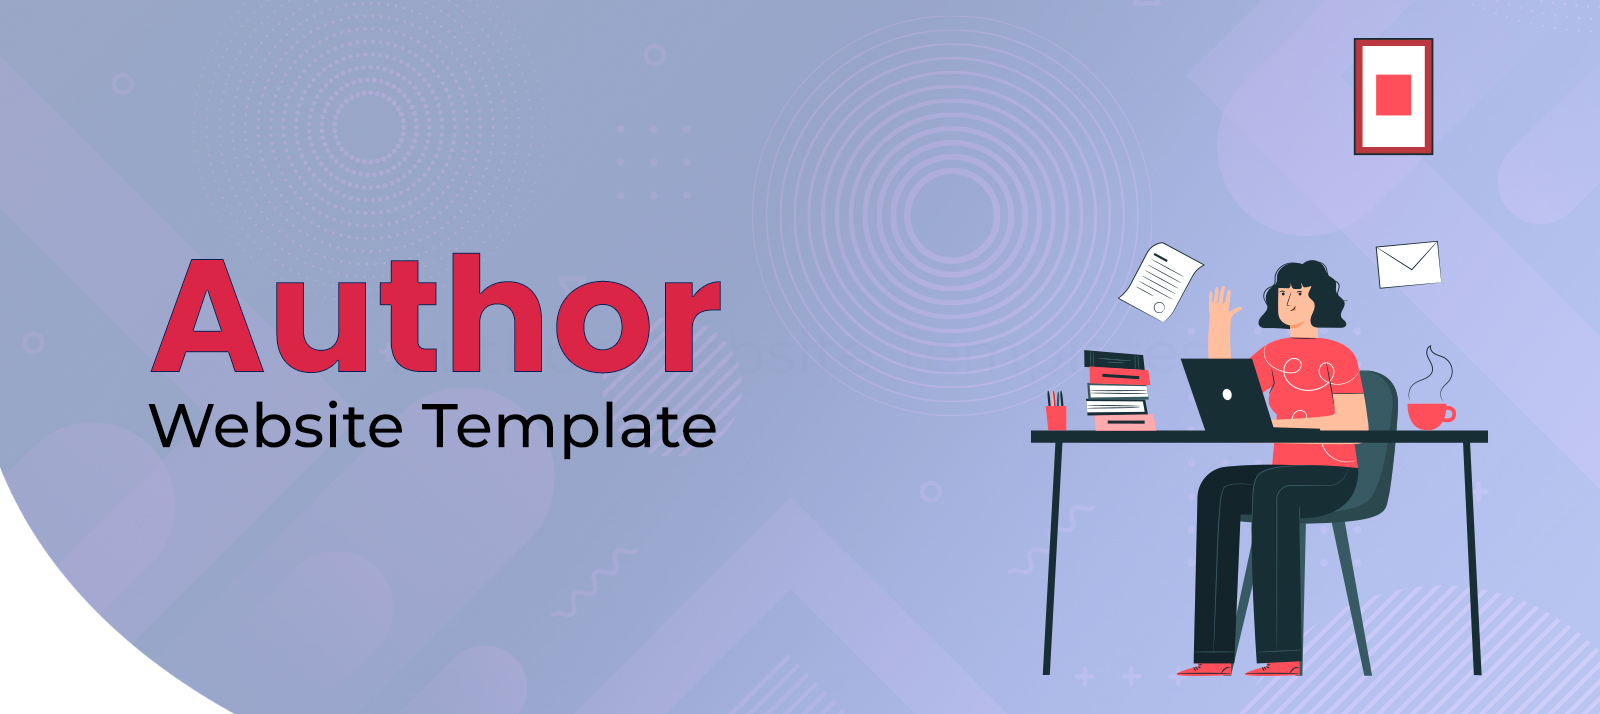 New and Ready To Use Website Templates and WordPress Themes For Authors